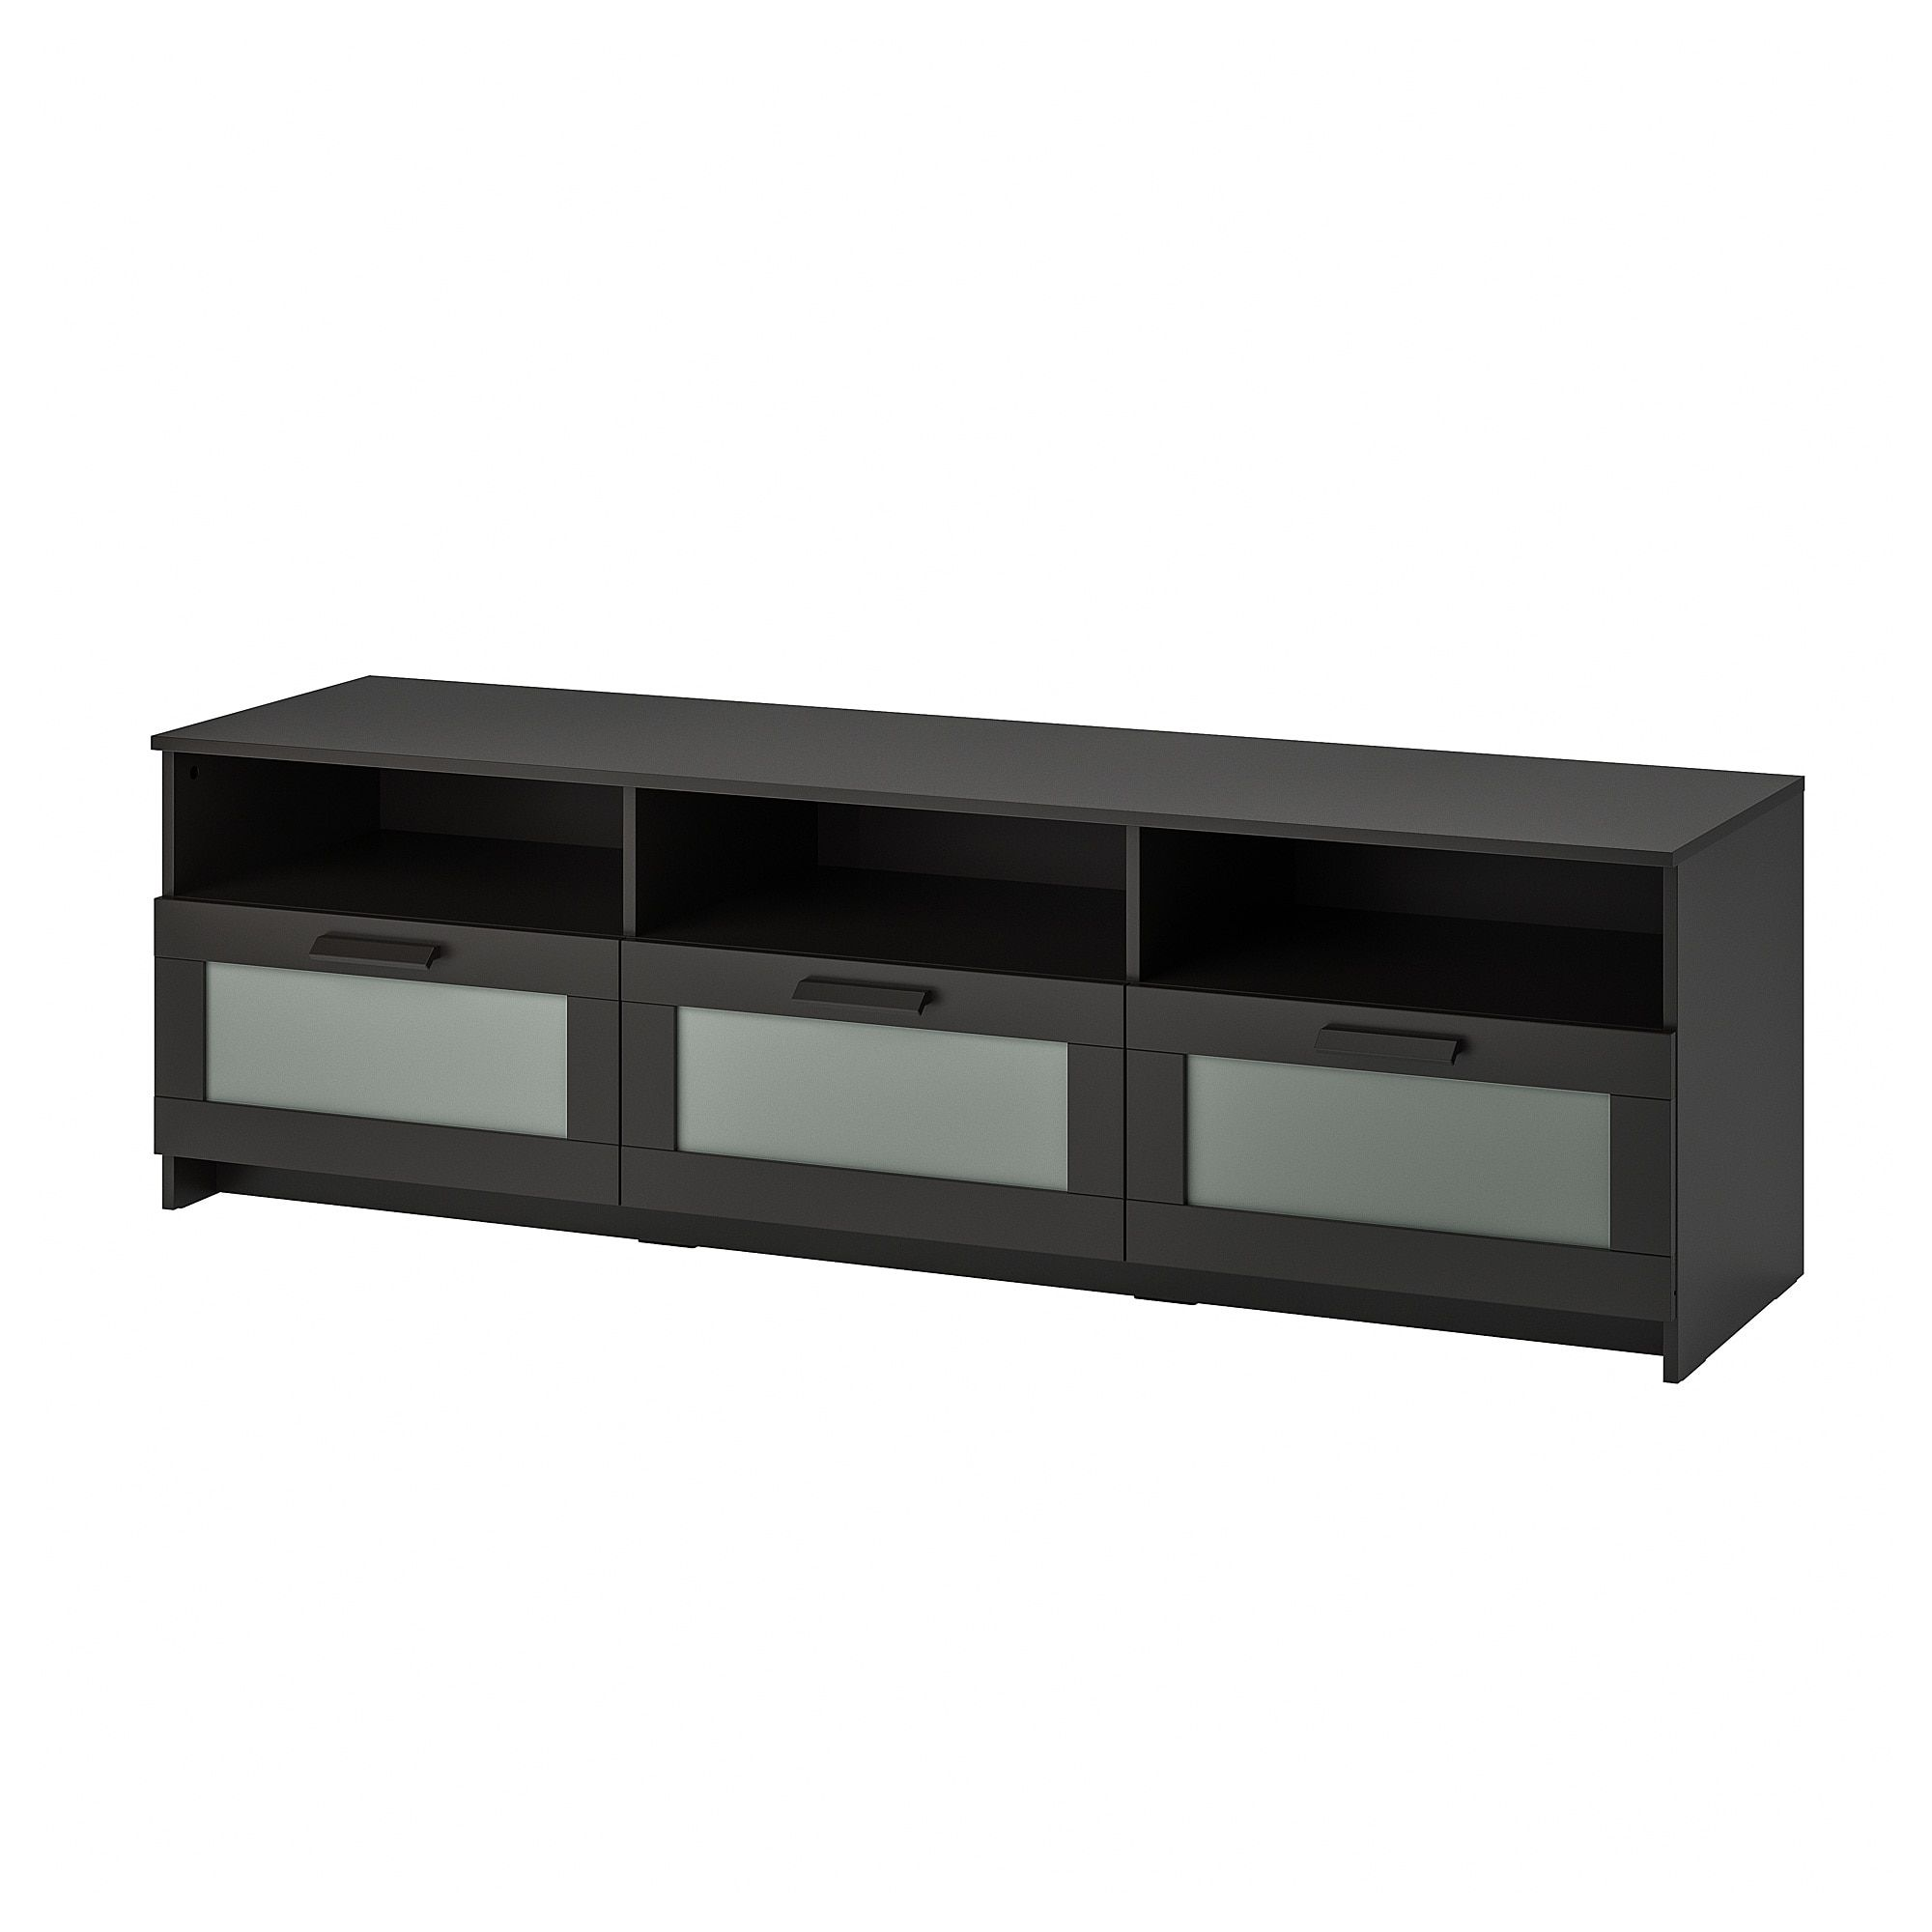 Brimnes Tv Unit Black 70 7 8x16 1 8x20 7 8 Tv Bench Tv Unit